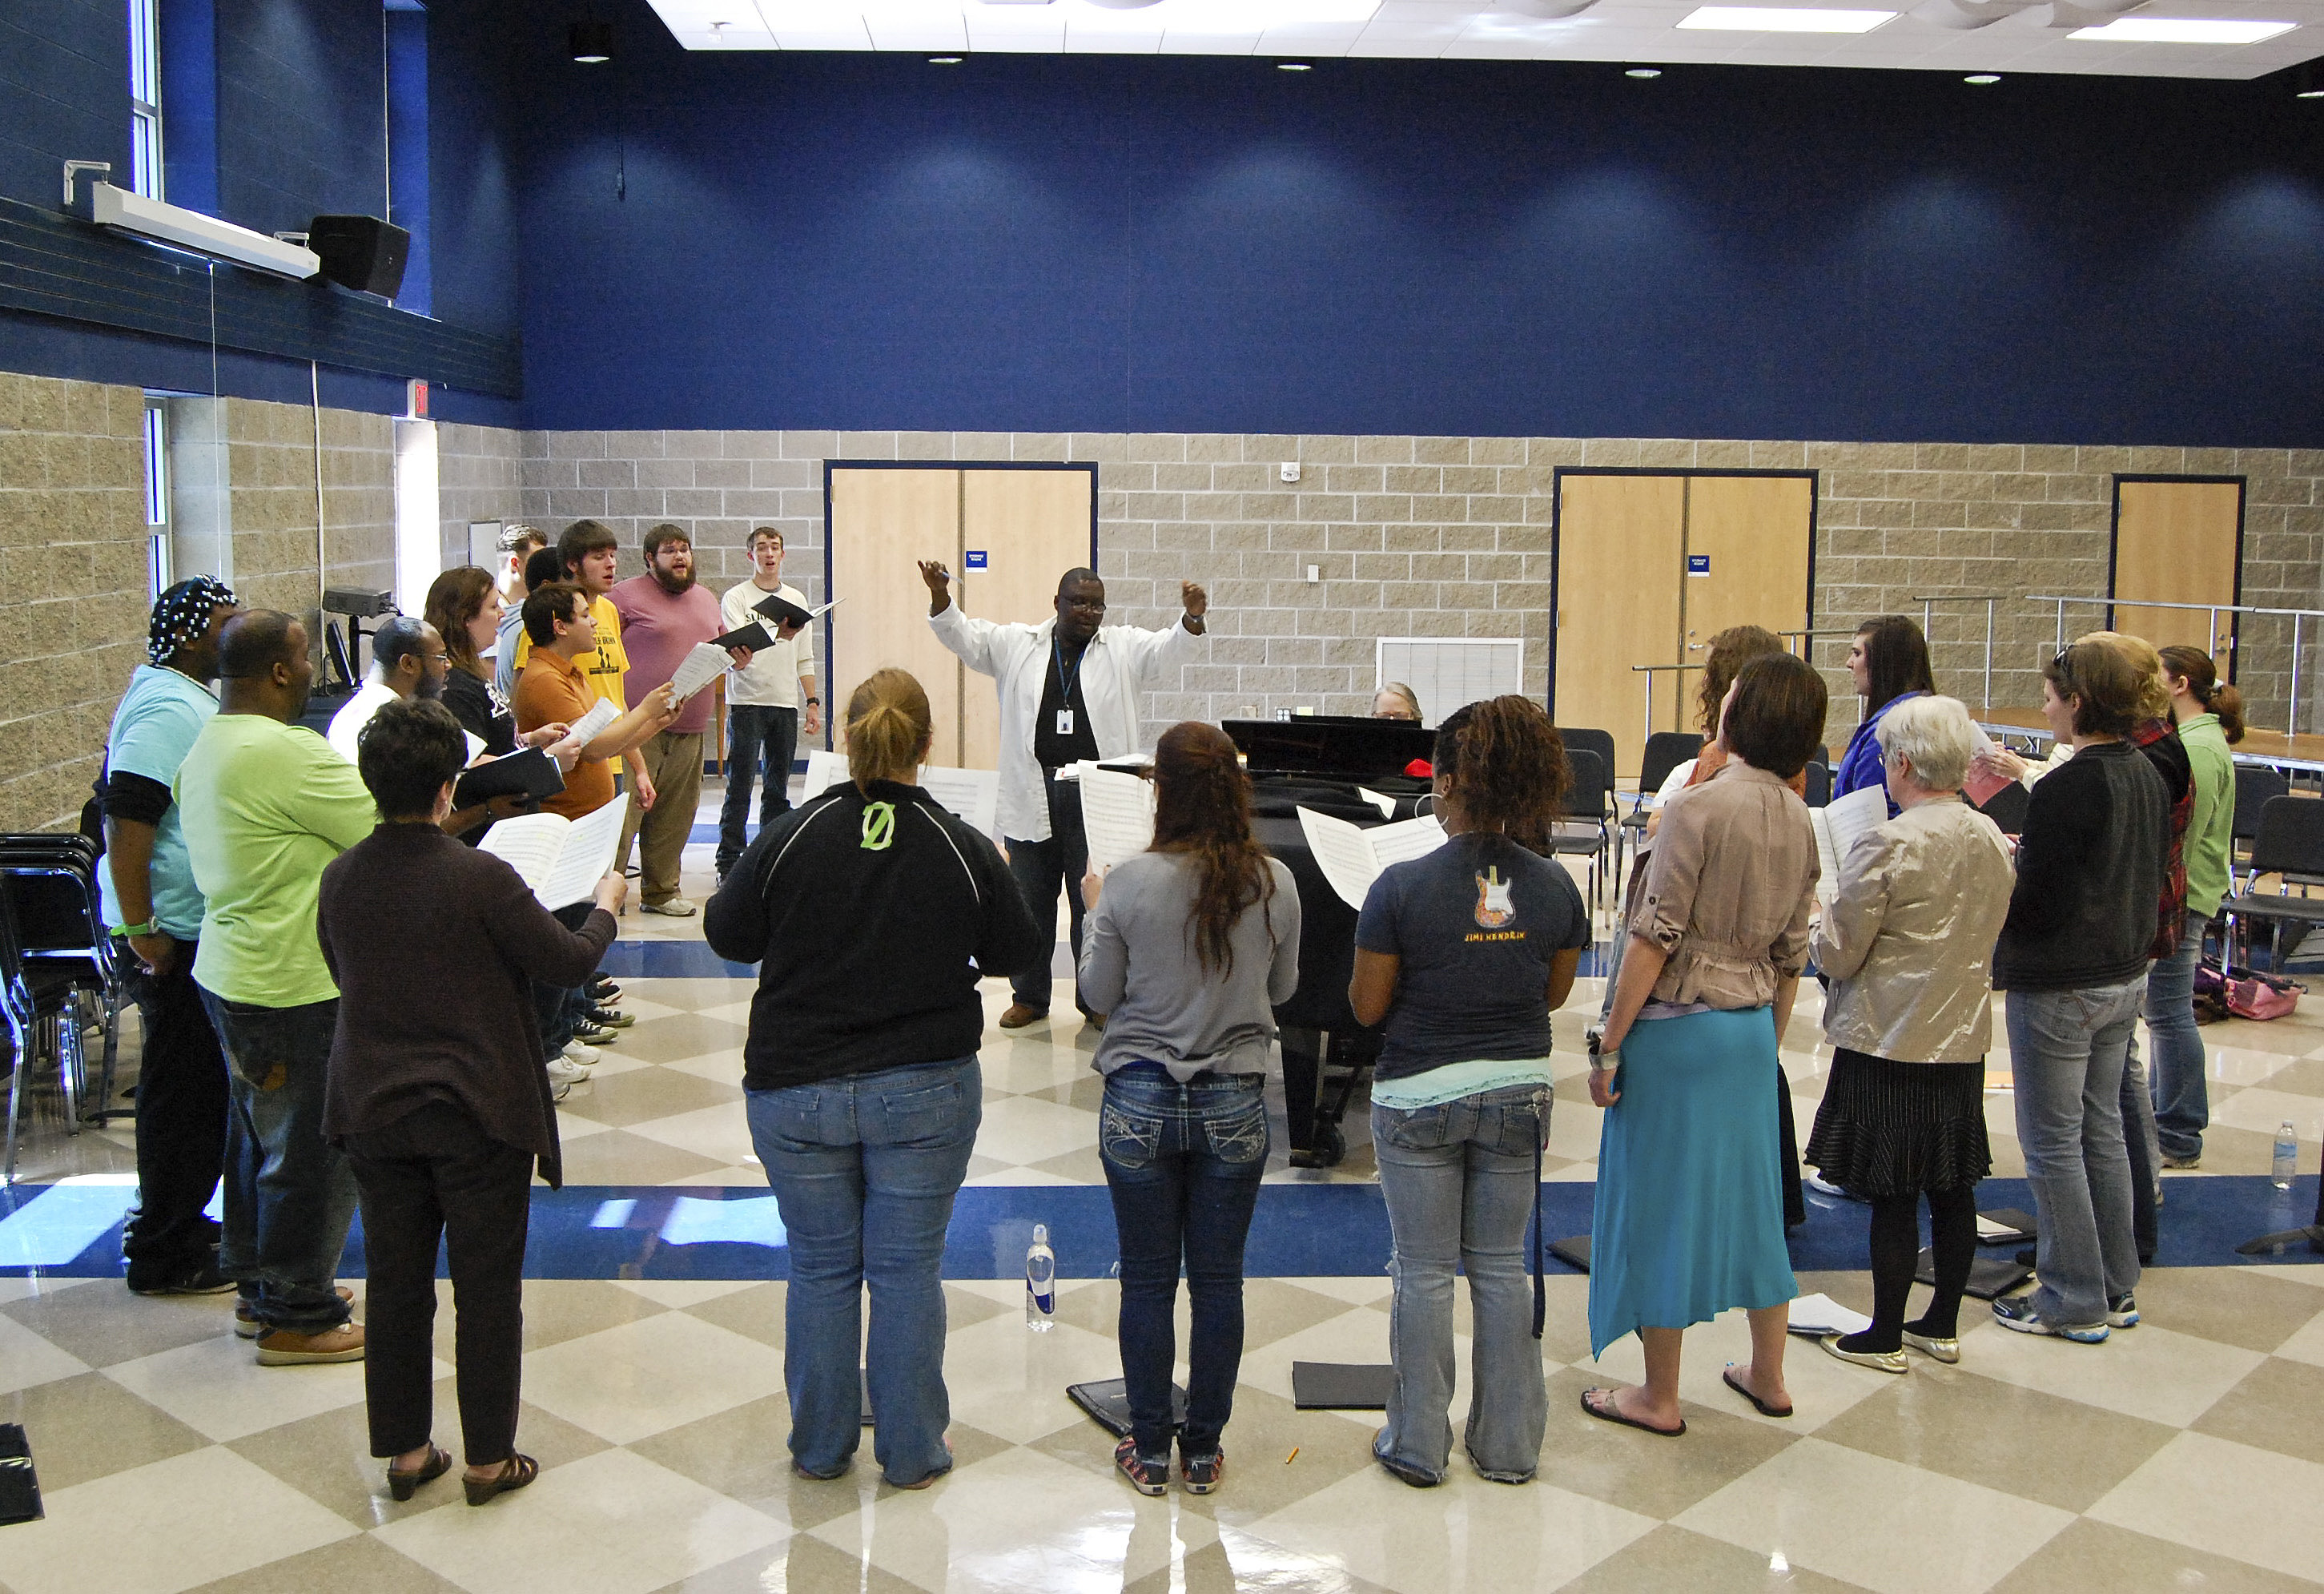 Choir singers rehearse at the Music Center